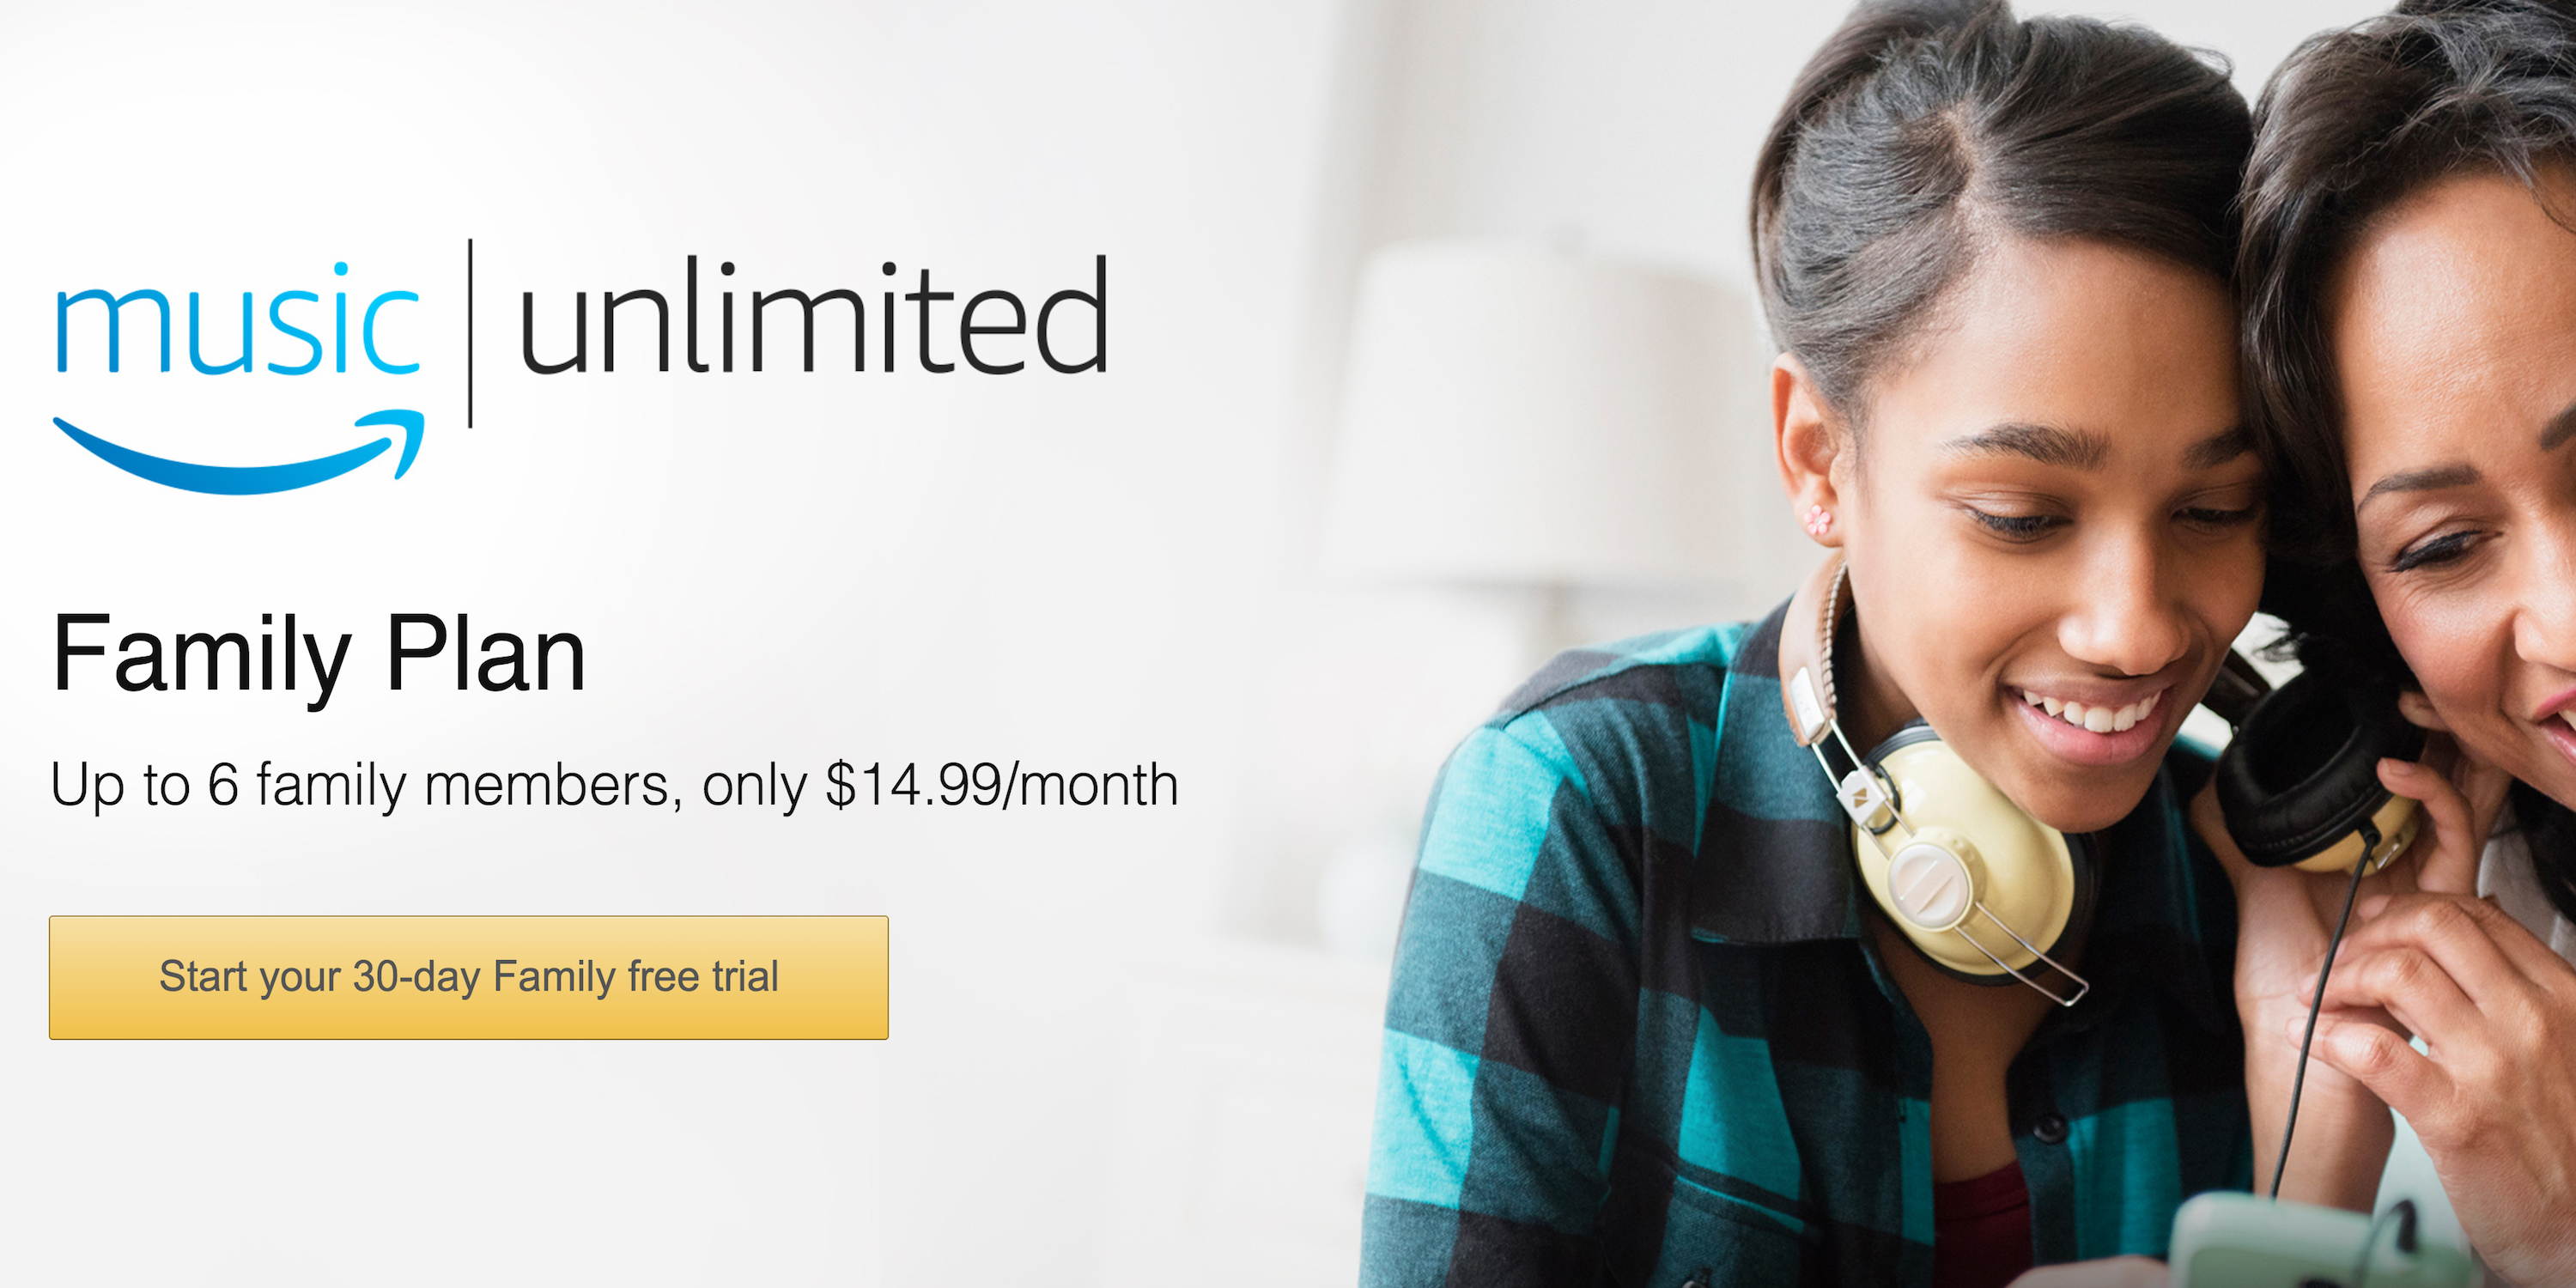 amazon-music-unlimited-family-plan